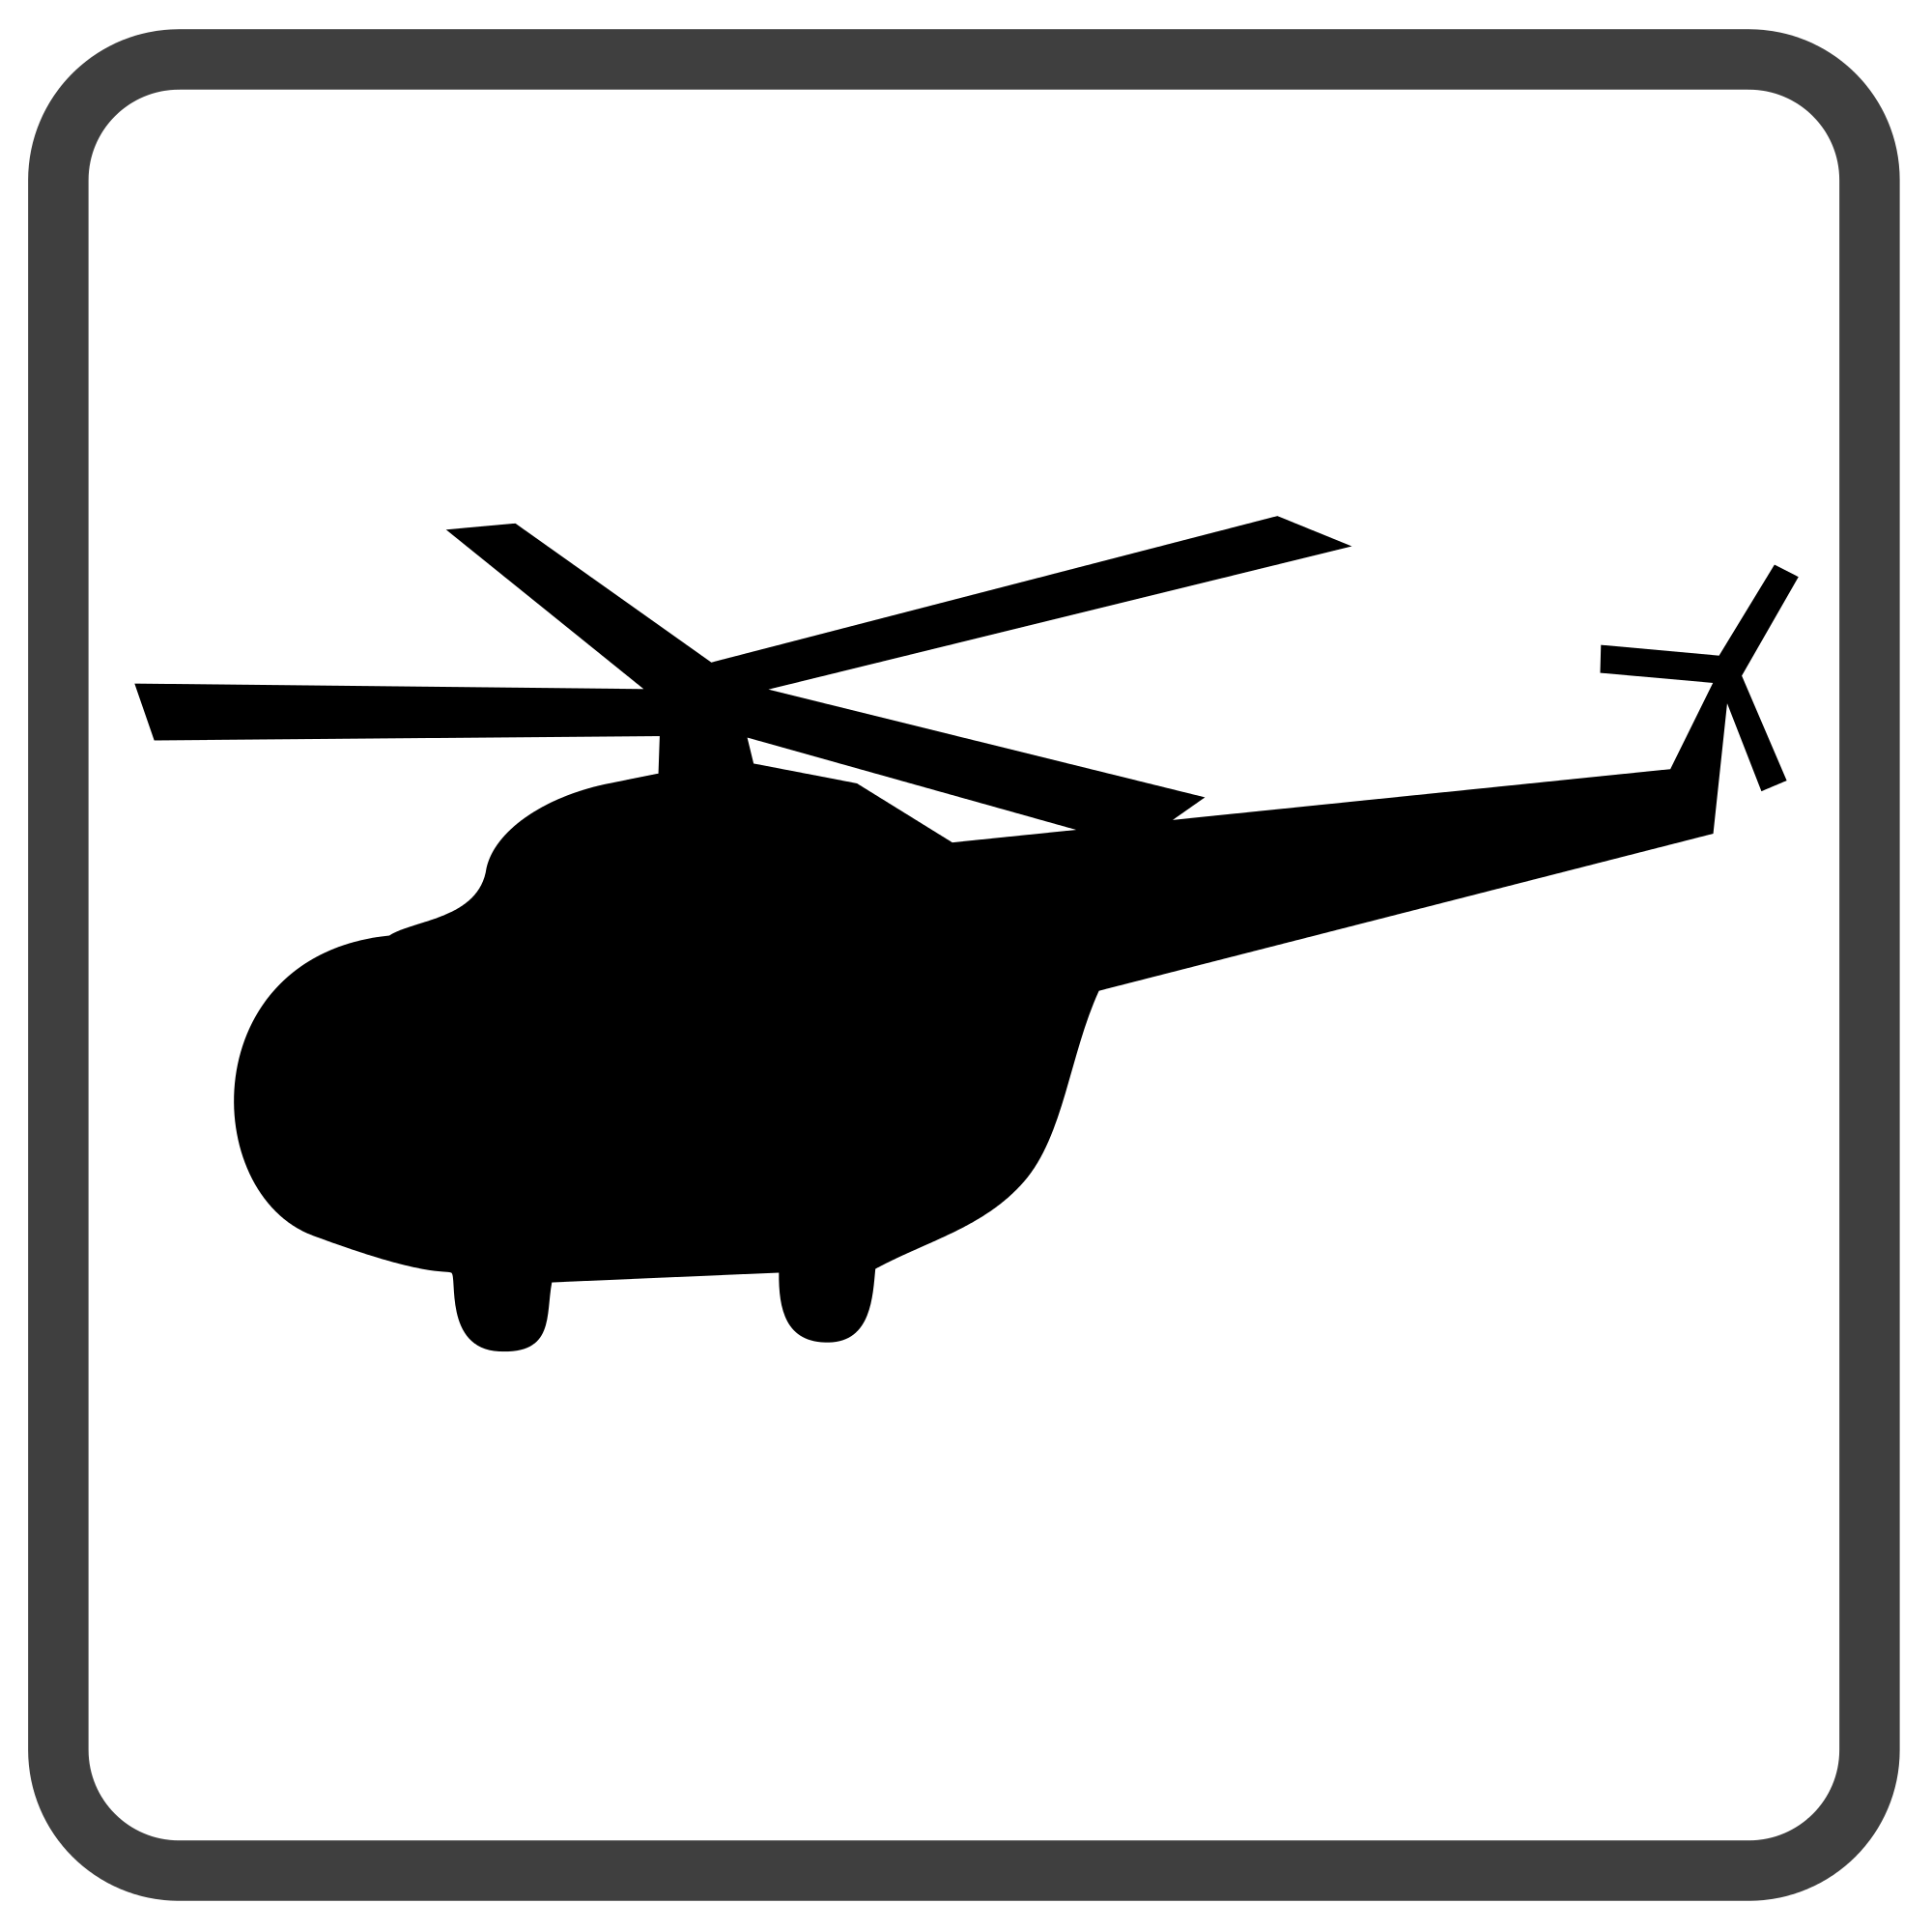 Helicopter svg #328, Download drawings